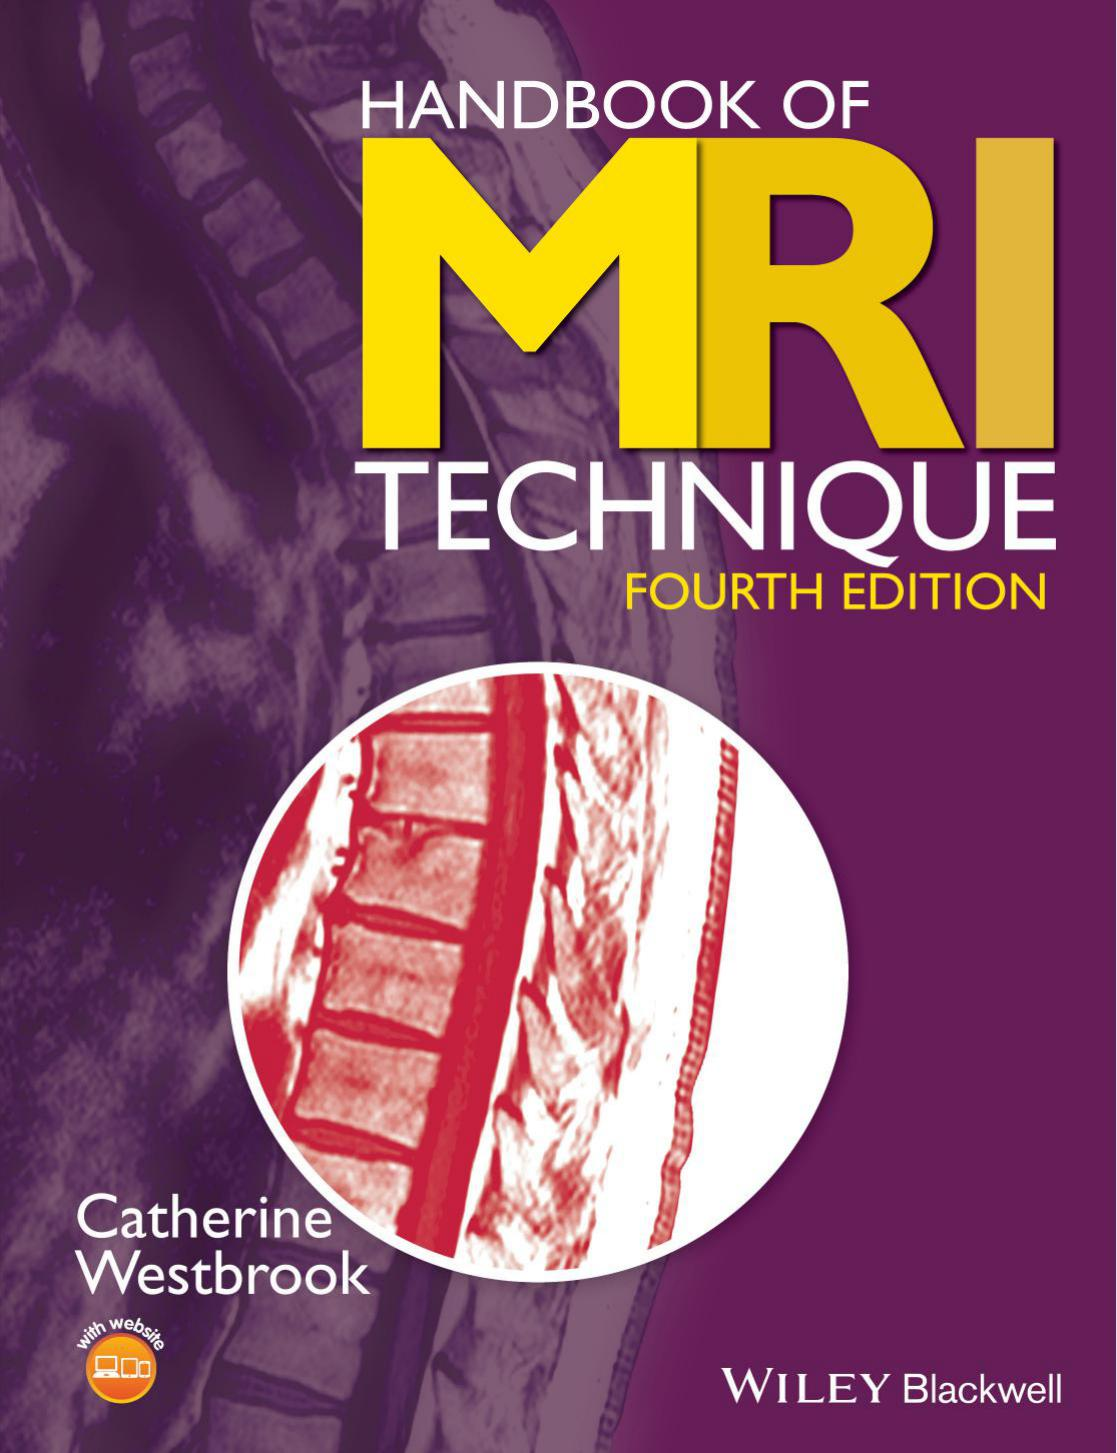 Handbook of MRI Technique 4th Edition PDF